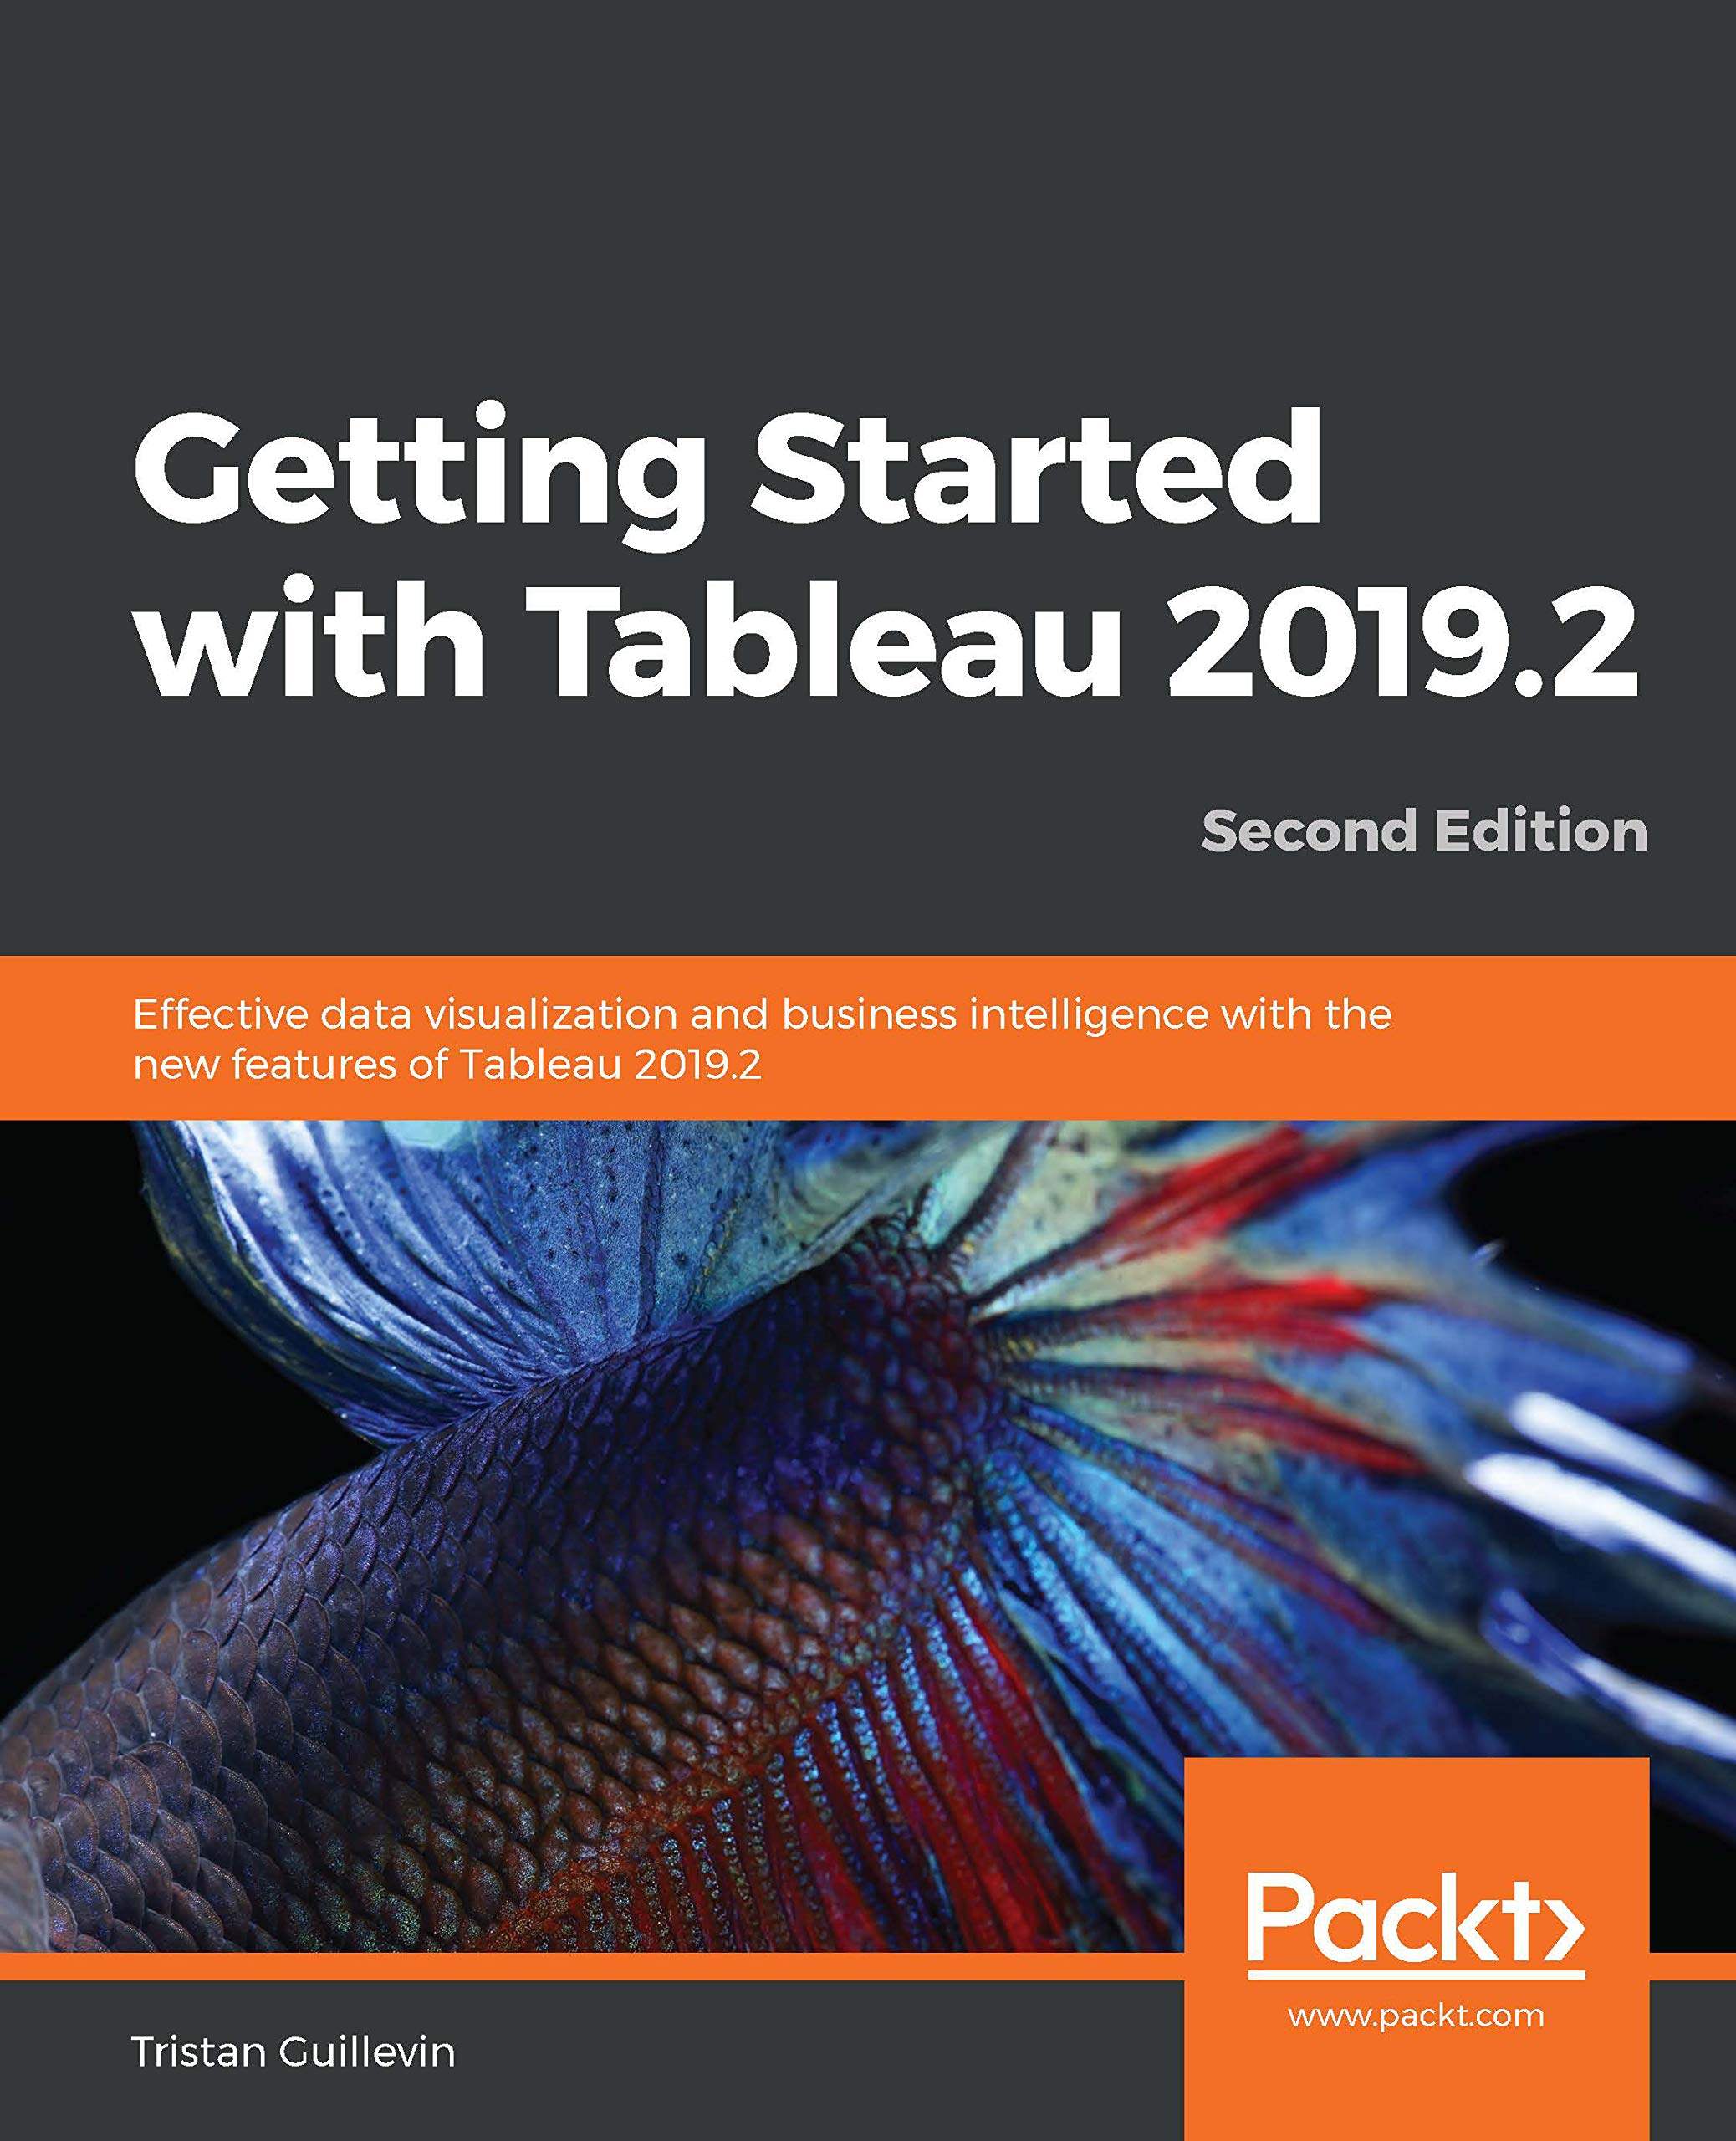 Image OfGetting Started With Tableau 2019.2: Effective Data Visualization And Business Intelligence With The New Features Of Table...